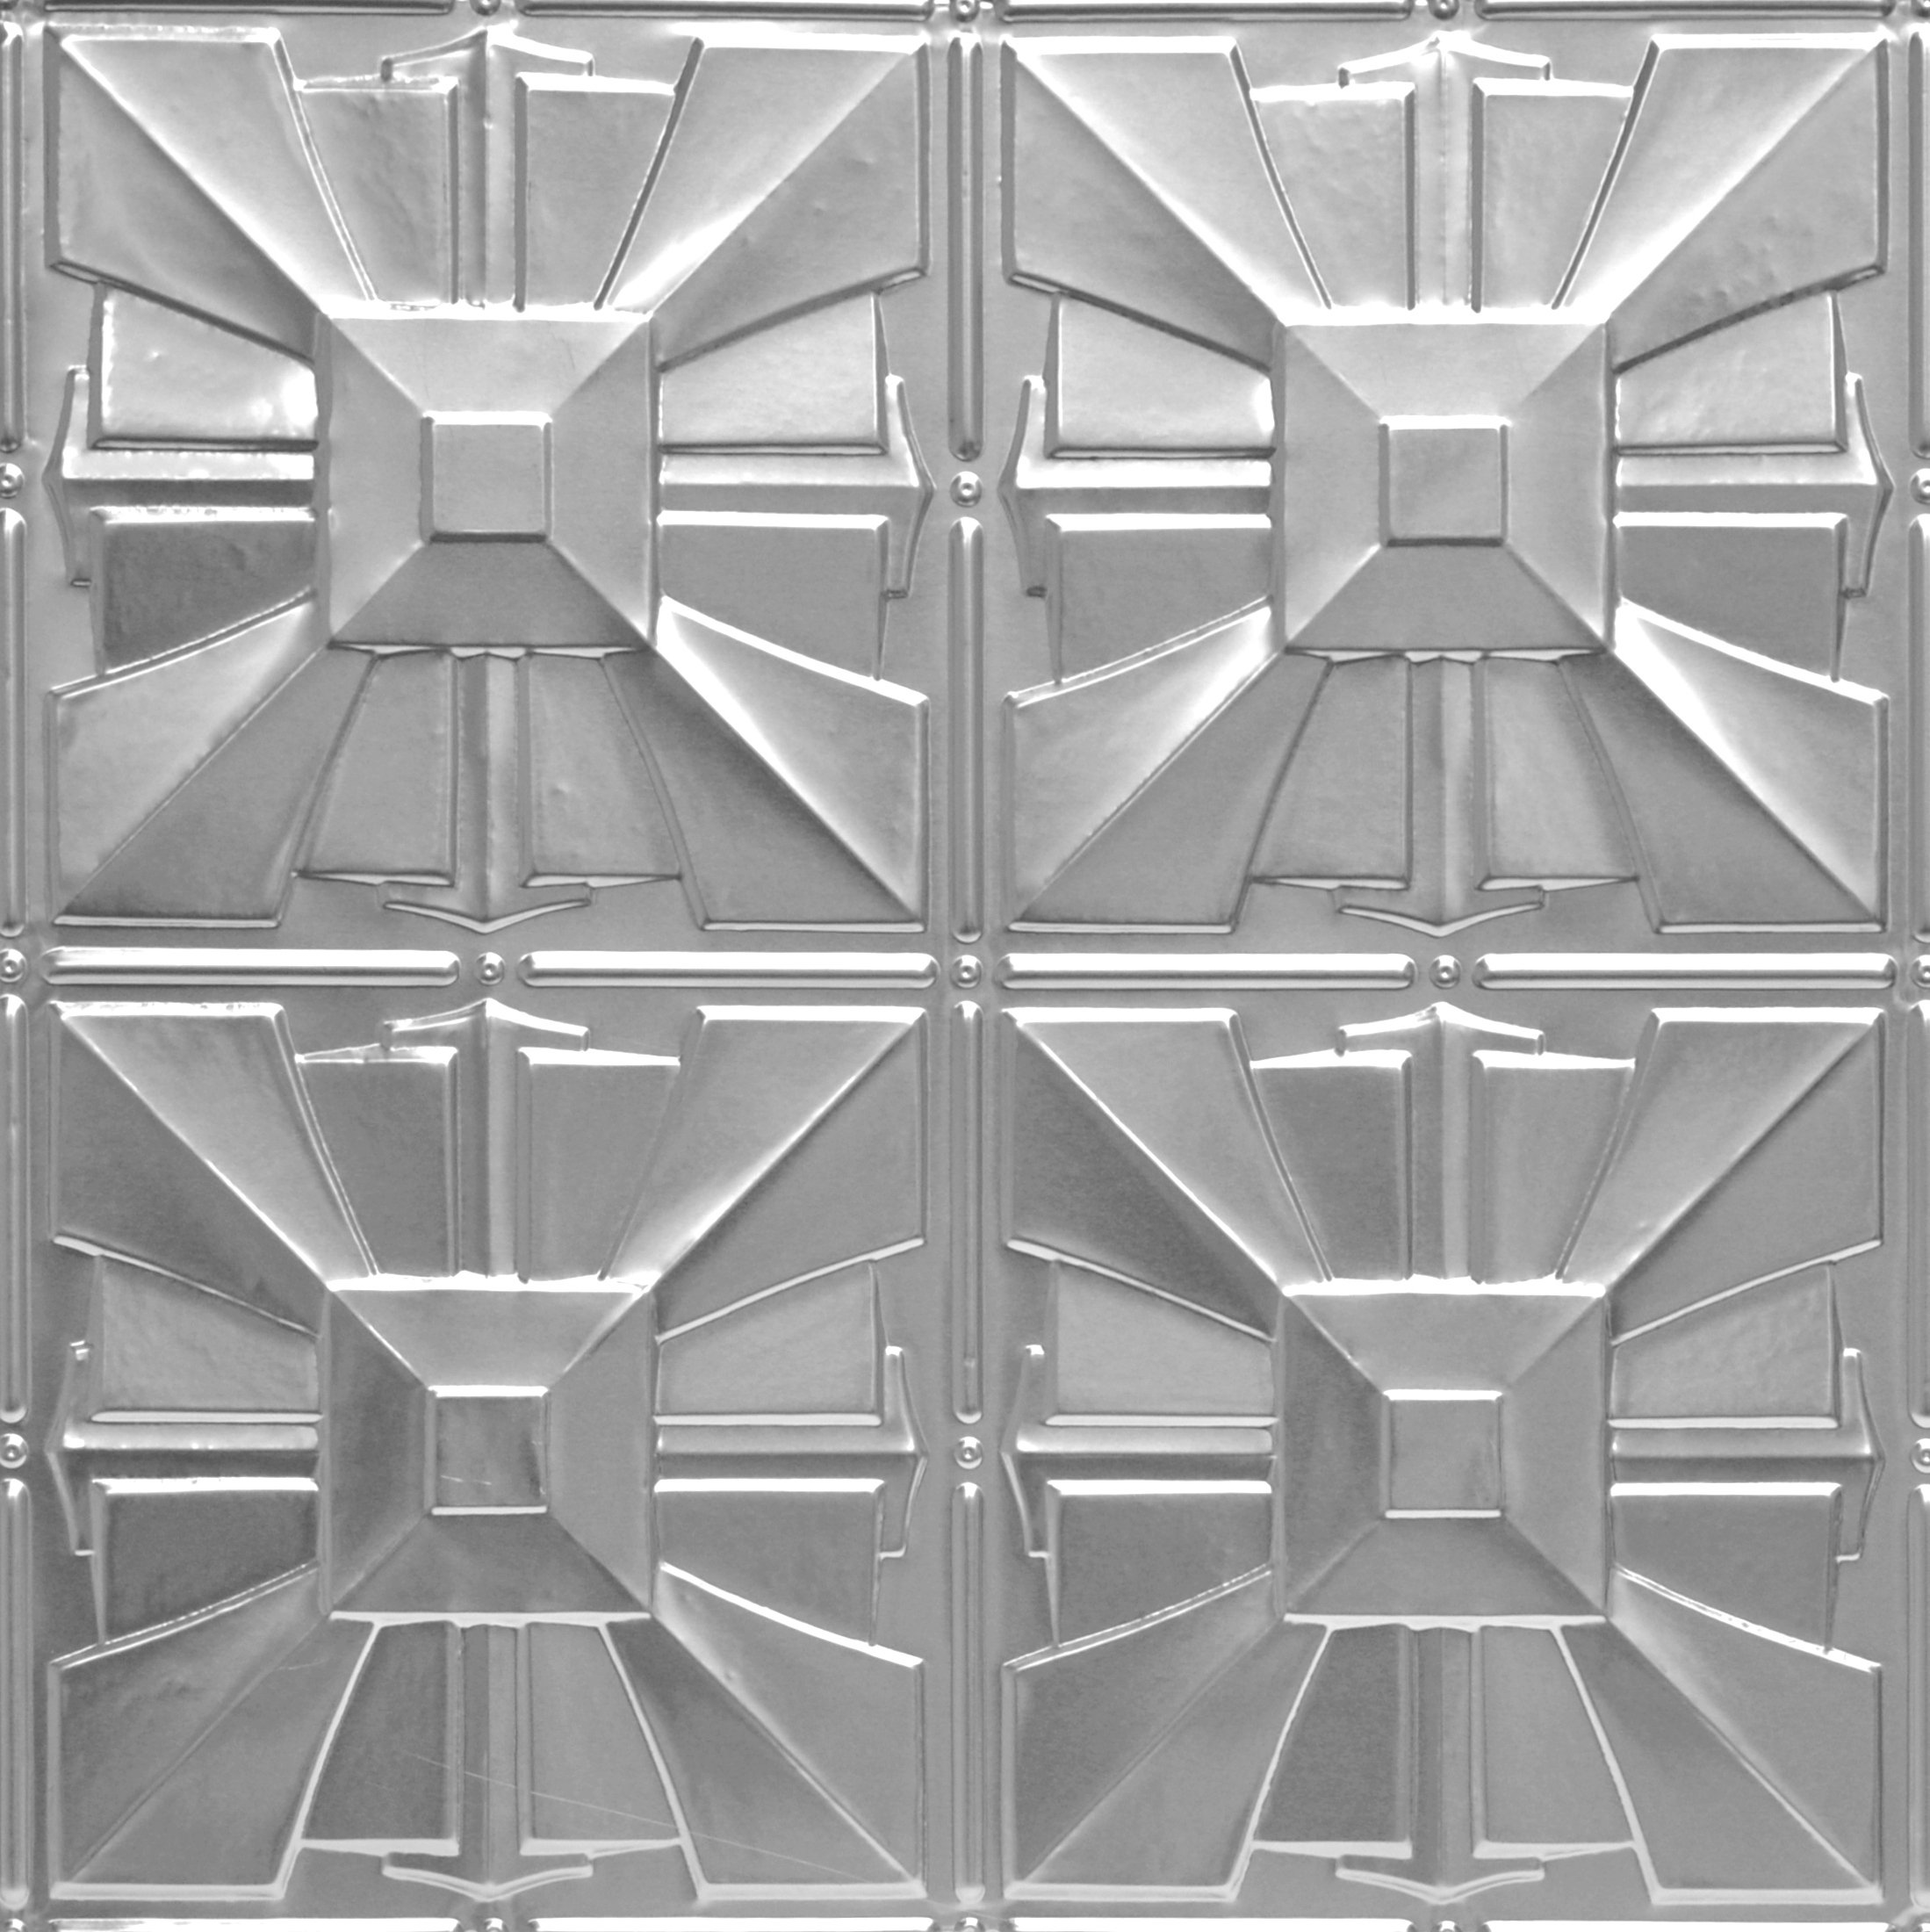 Shanko LS314DA Pattern 314 Authentic Pressed Metal Wall and Ceiling Tiles, 20 sq. ft., Lacquered Steel